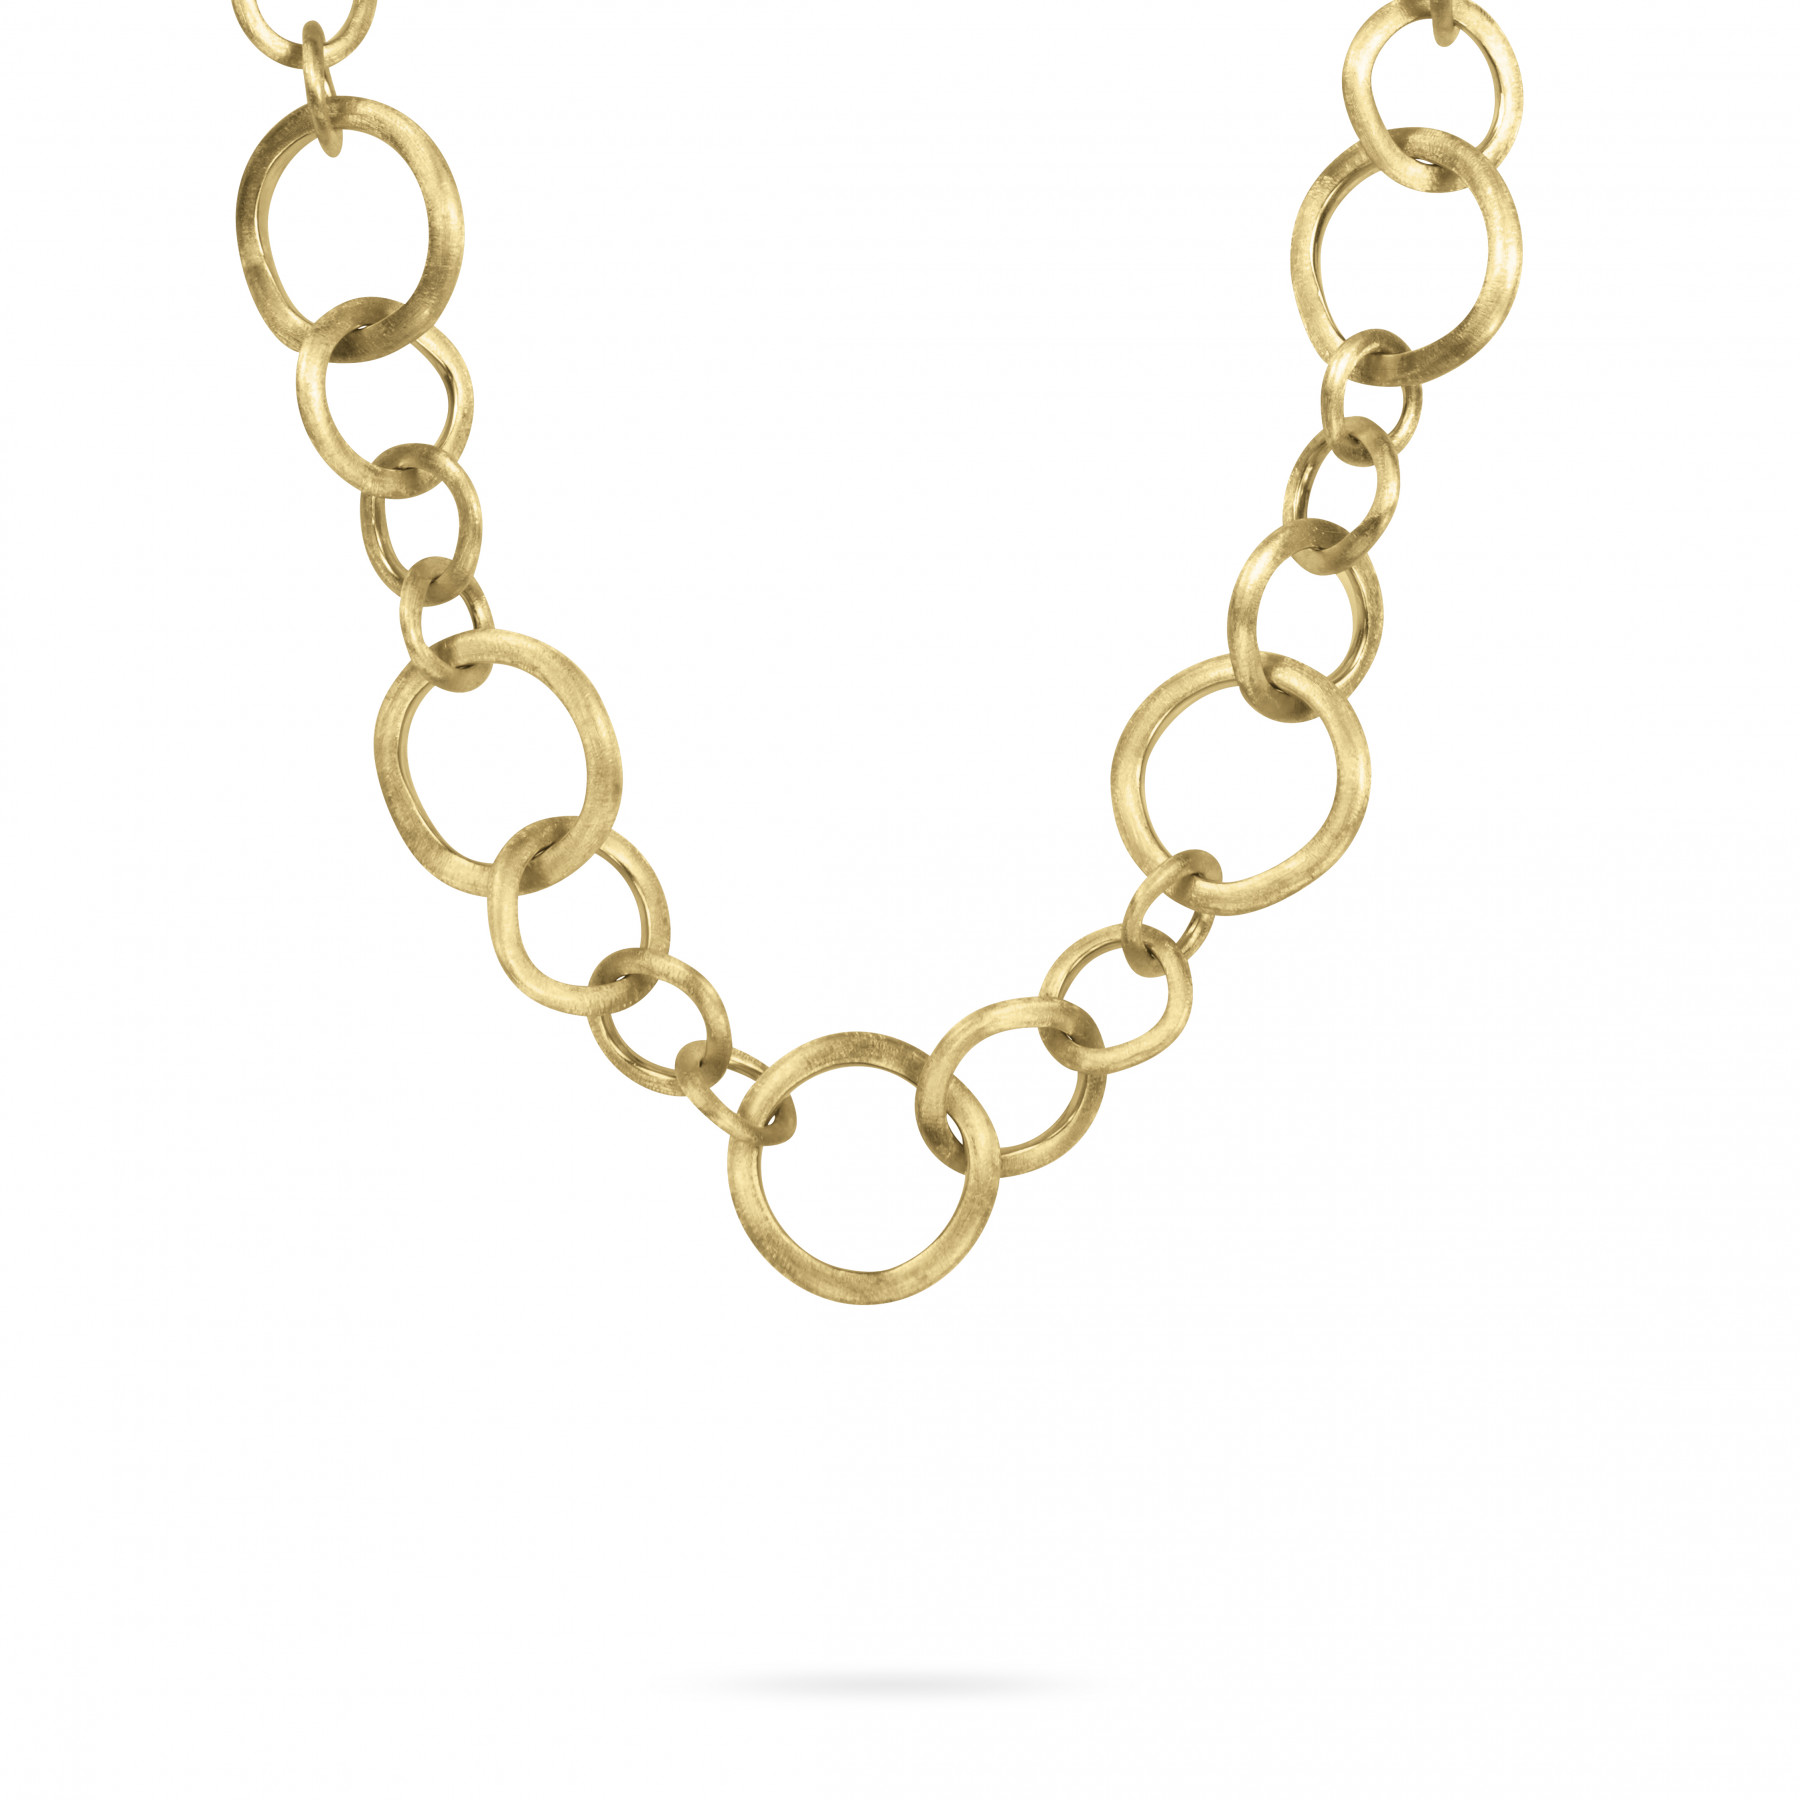 Marco Bicego 18kt Yellow Gold Chain Necklace 19""